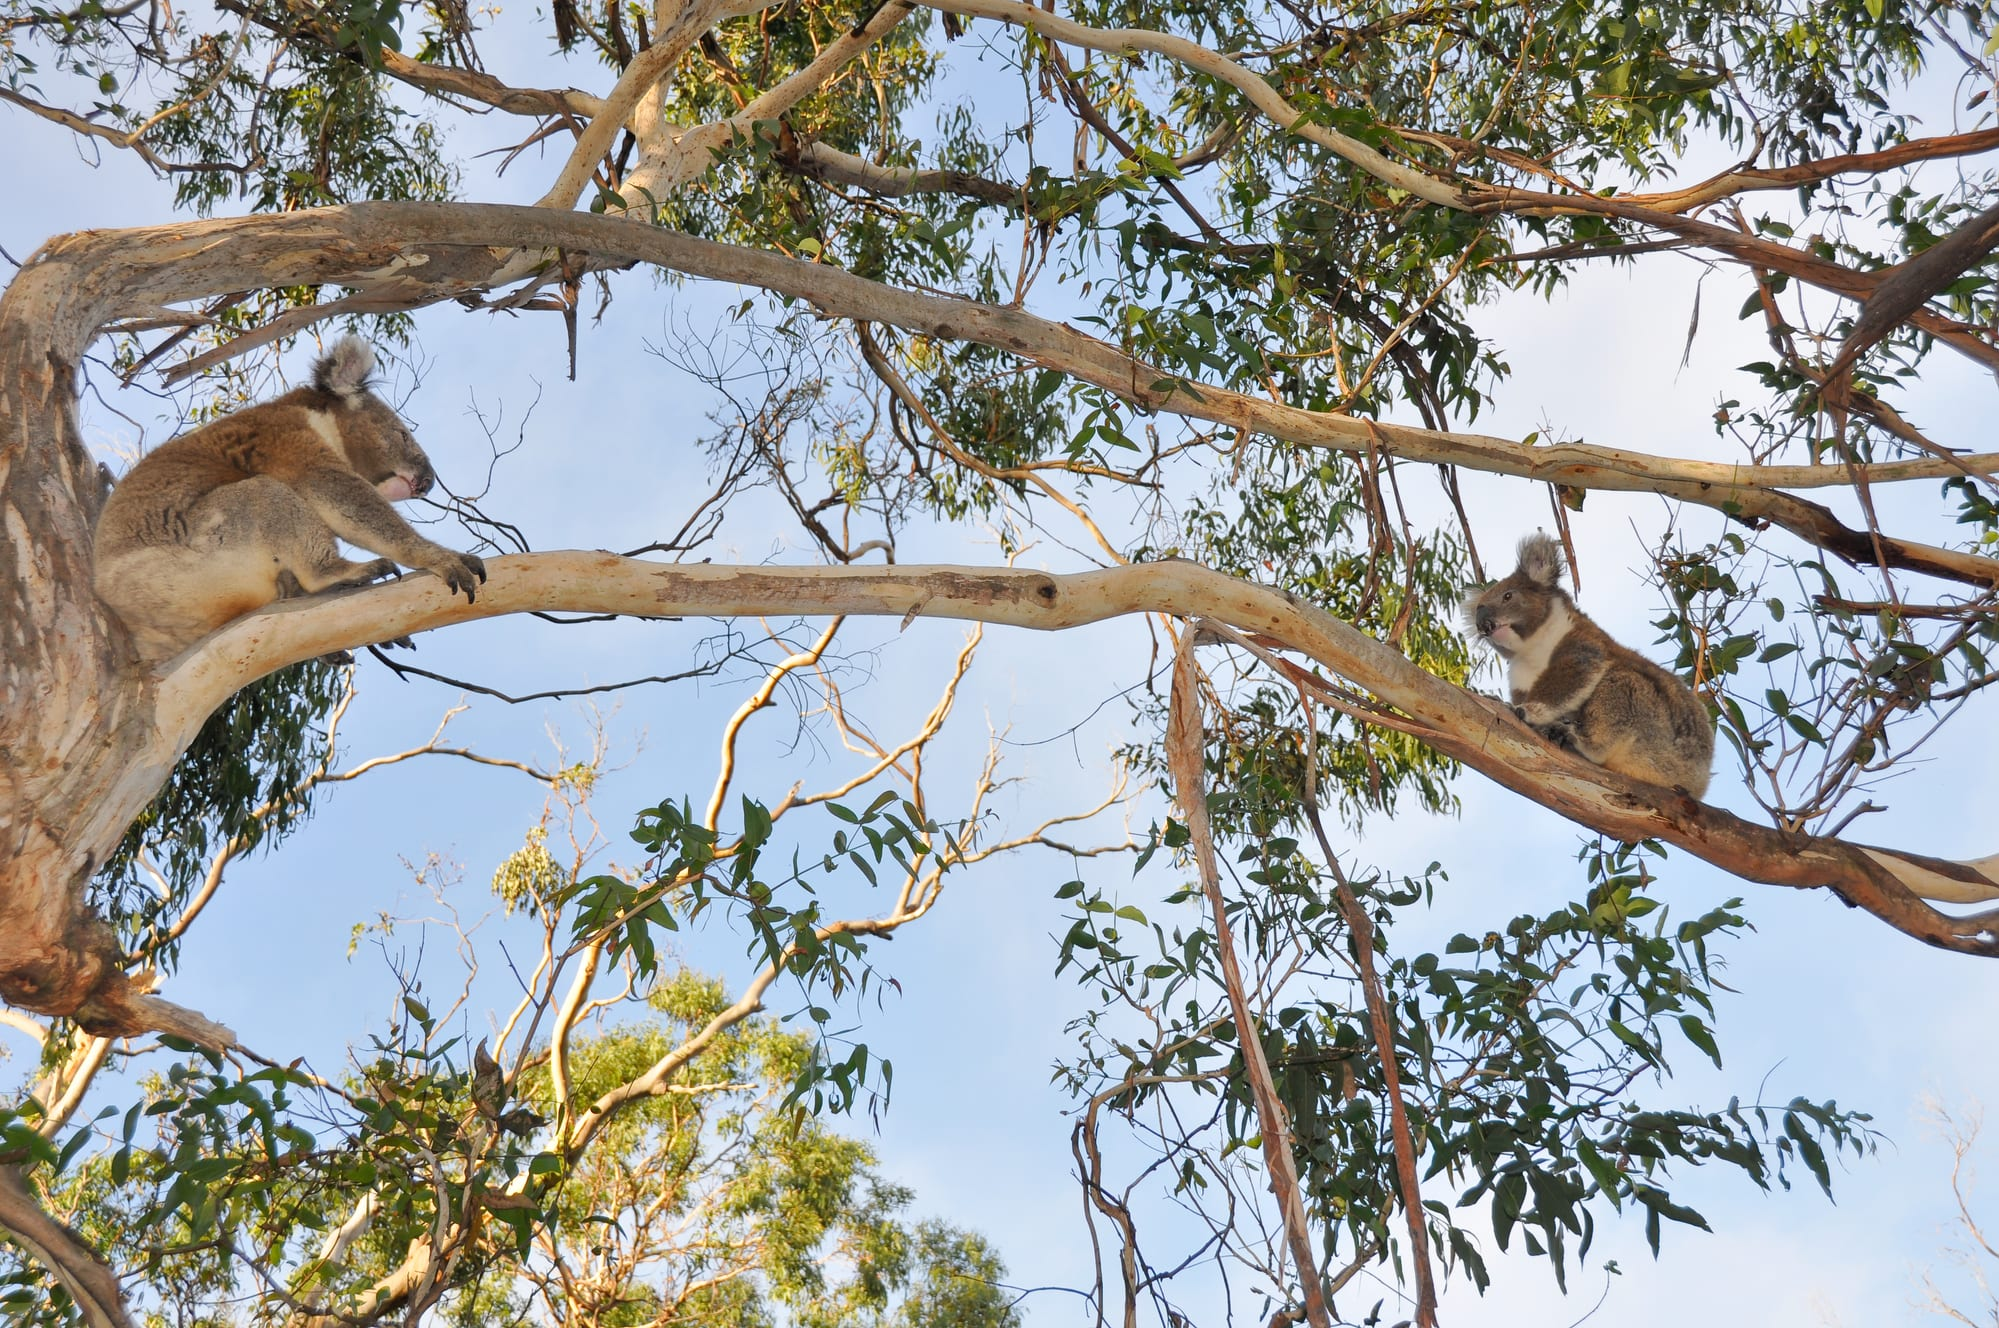 The Kennett River Koala Walk: The Best Place to See Koalas on the Great Ocean Road